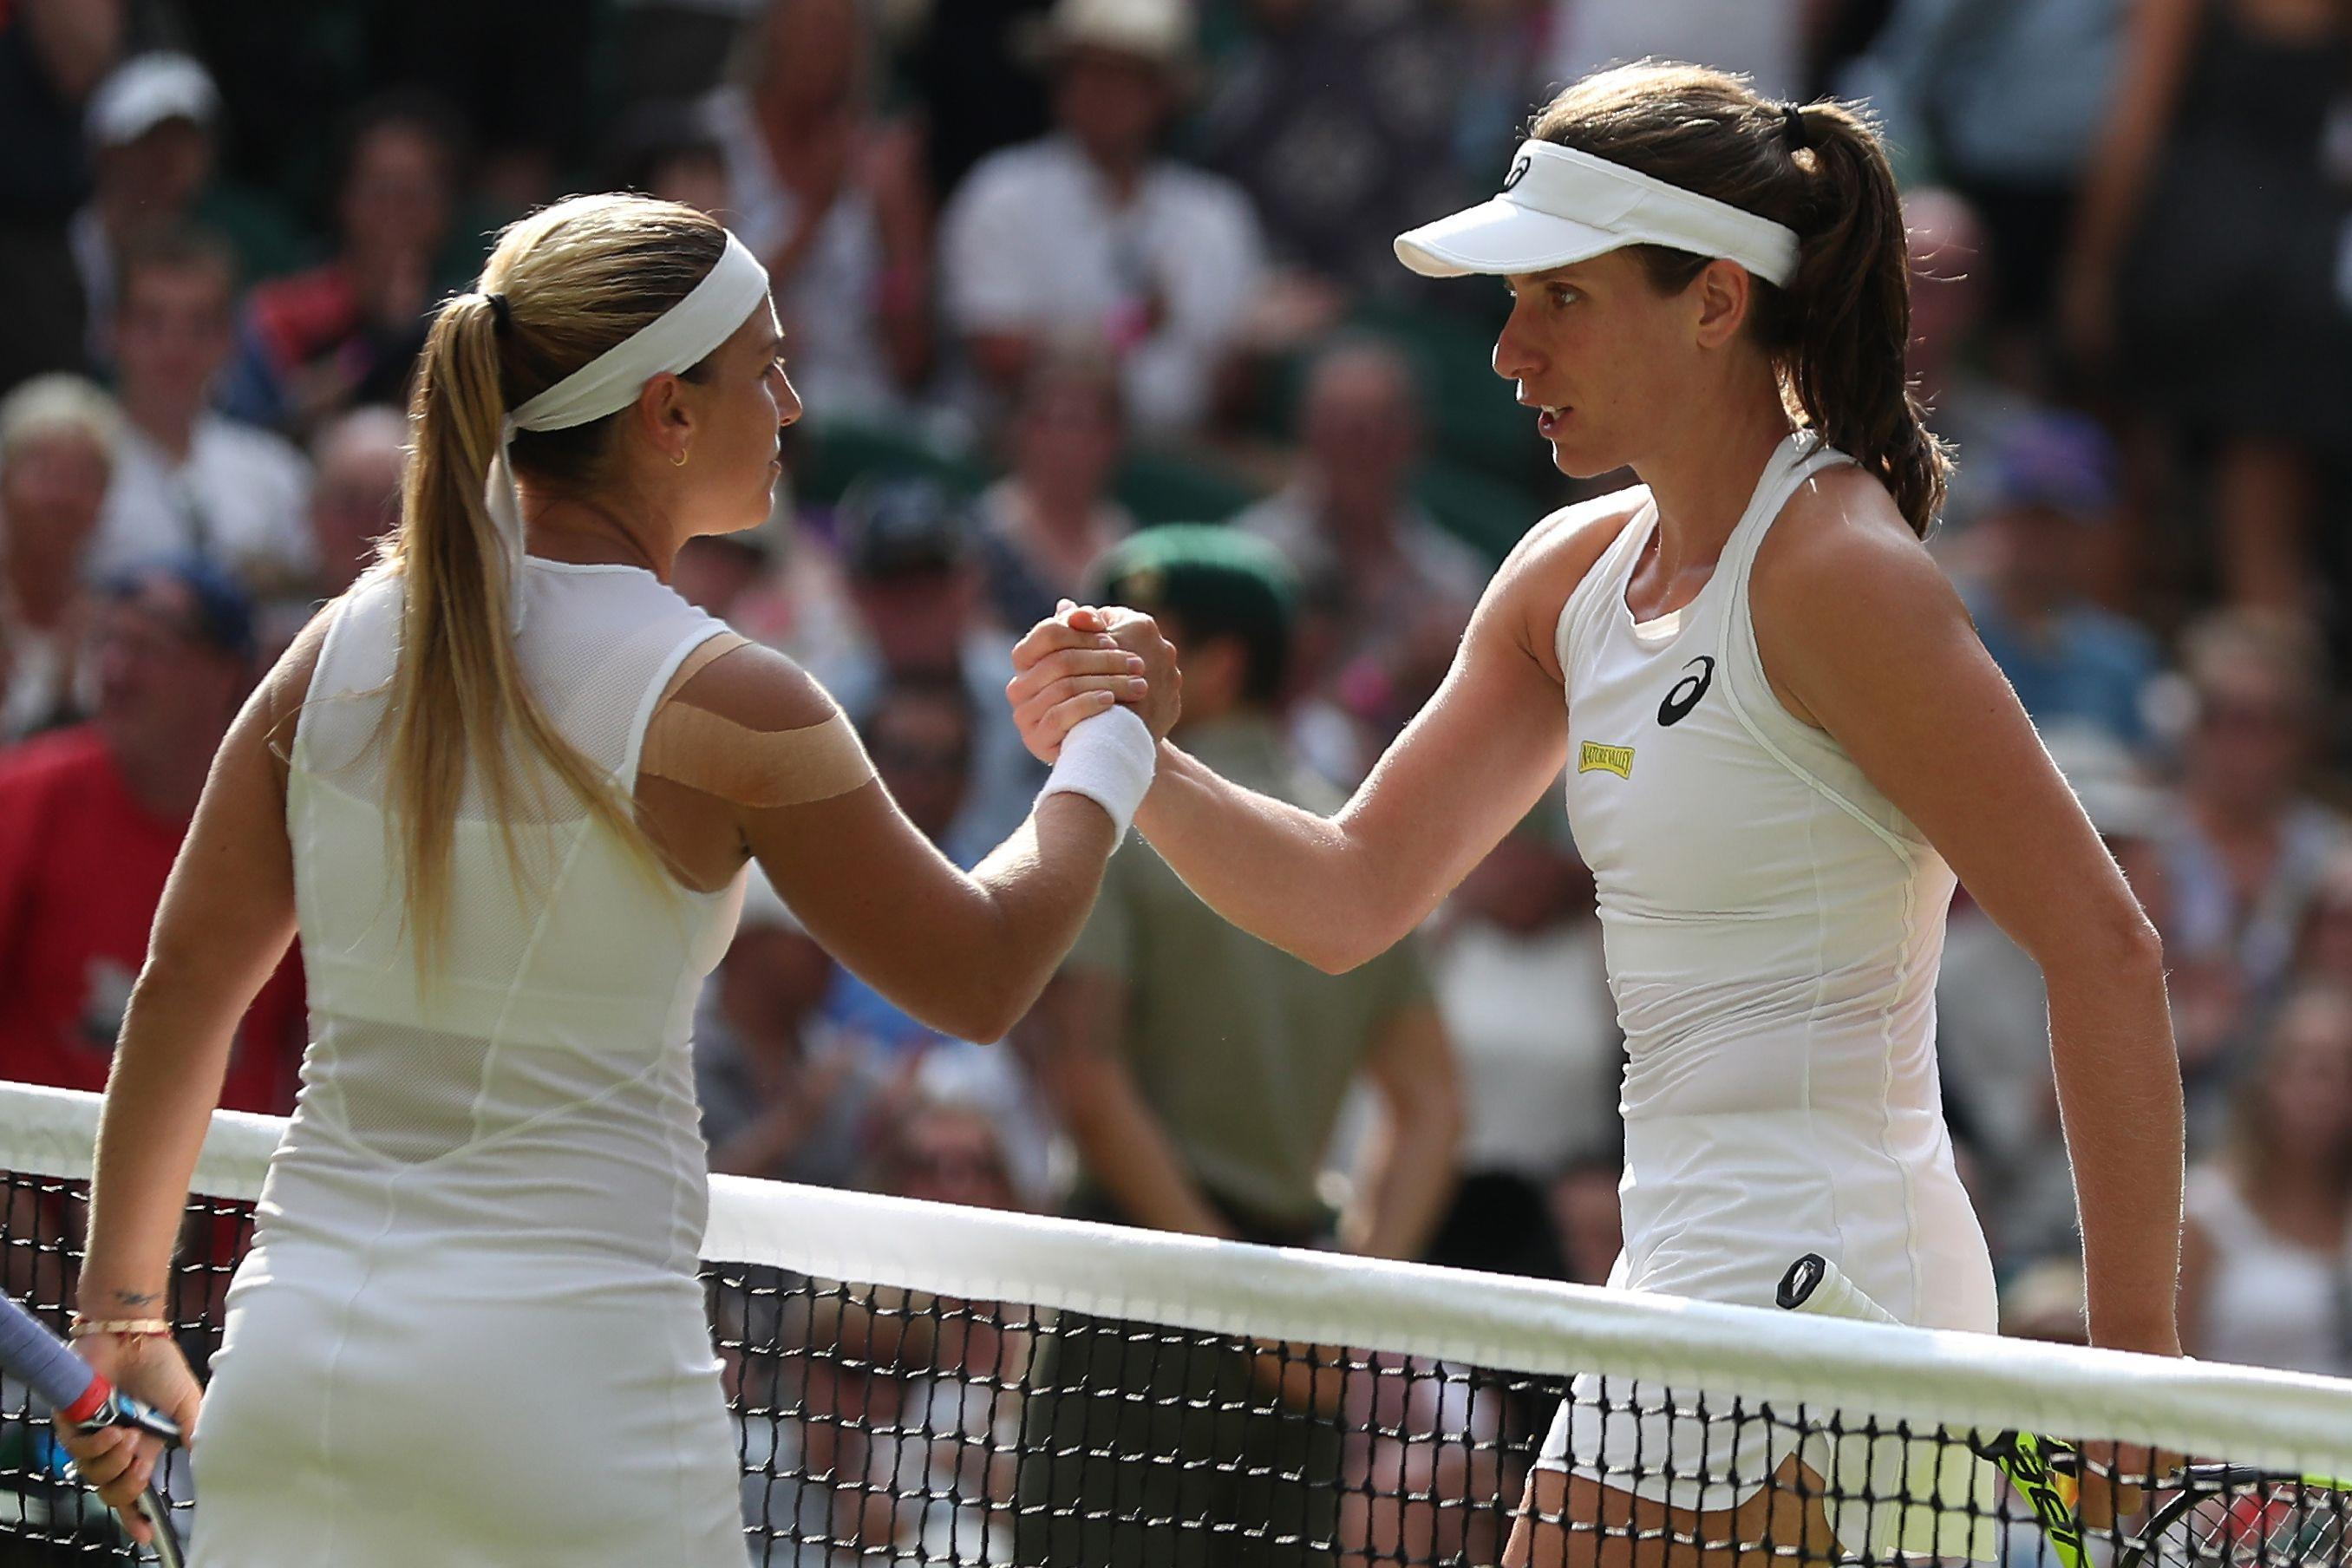 Cibulkova was unseeded after Serene Williams was controversially boosted up the list